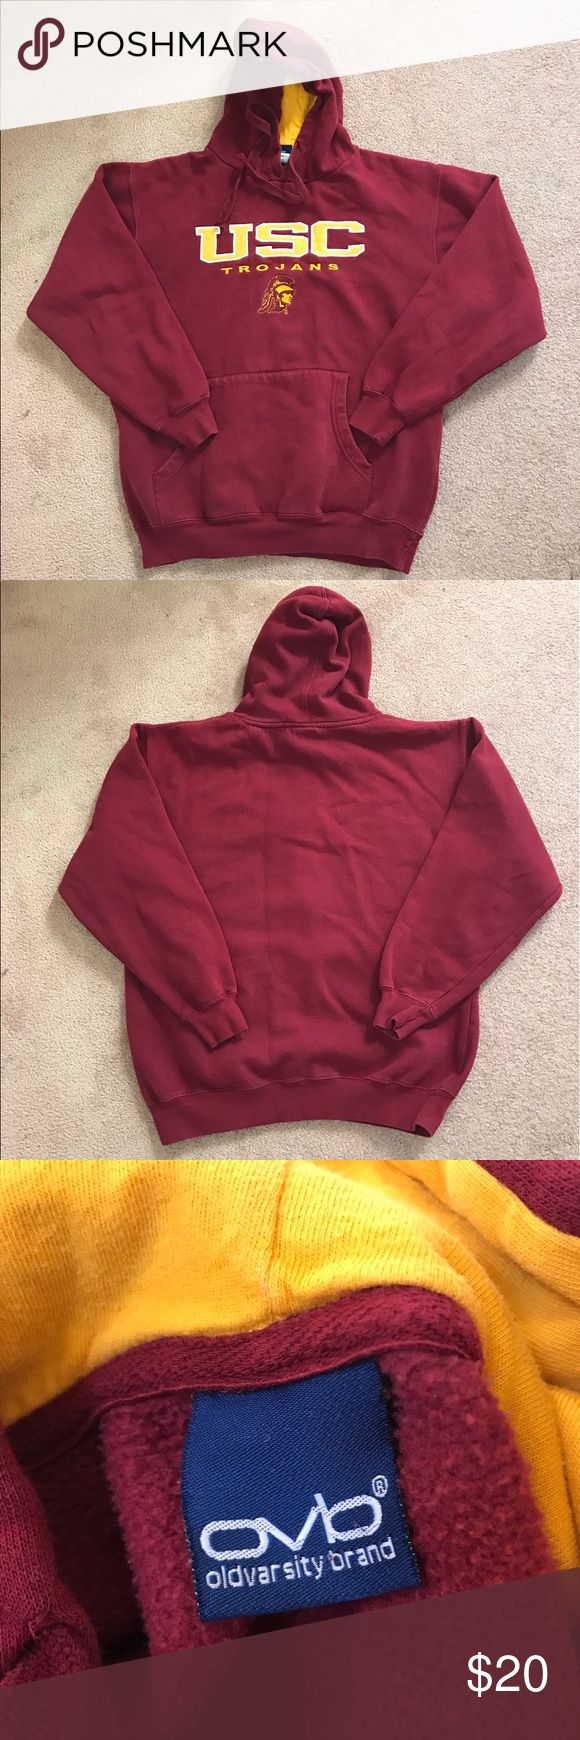 USC Hoodie USC college hoodie, adult large, good condition Sweaters